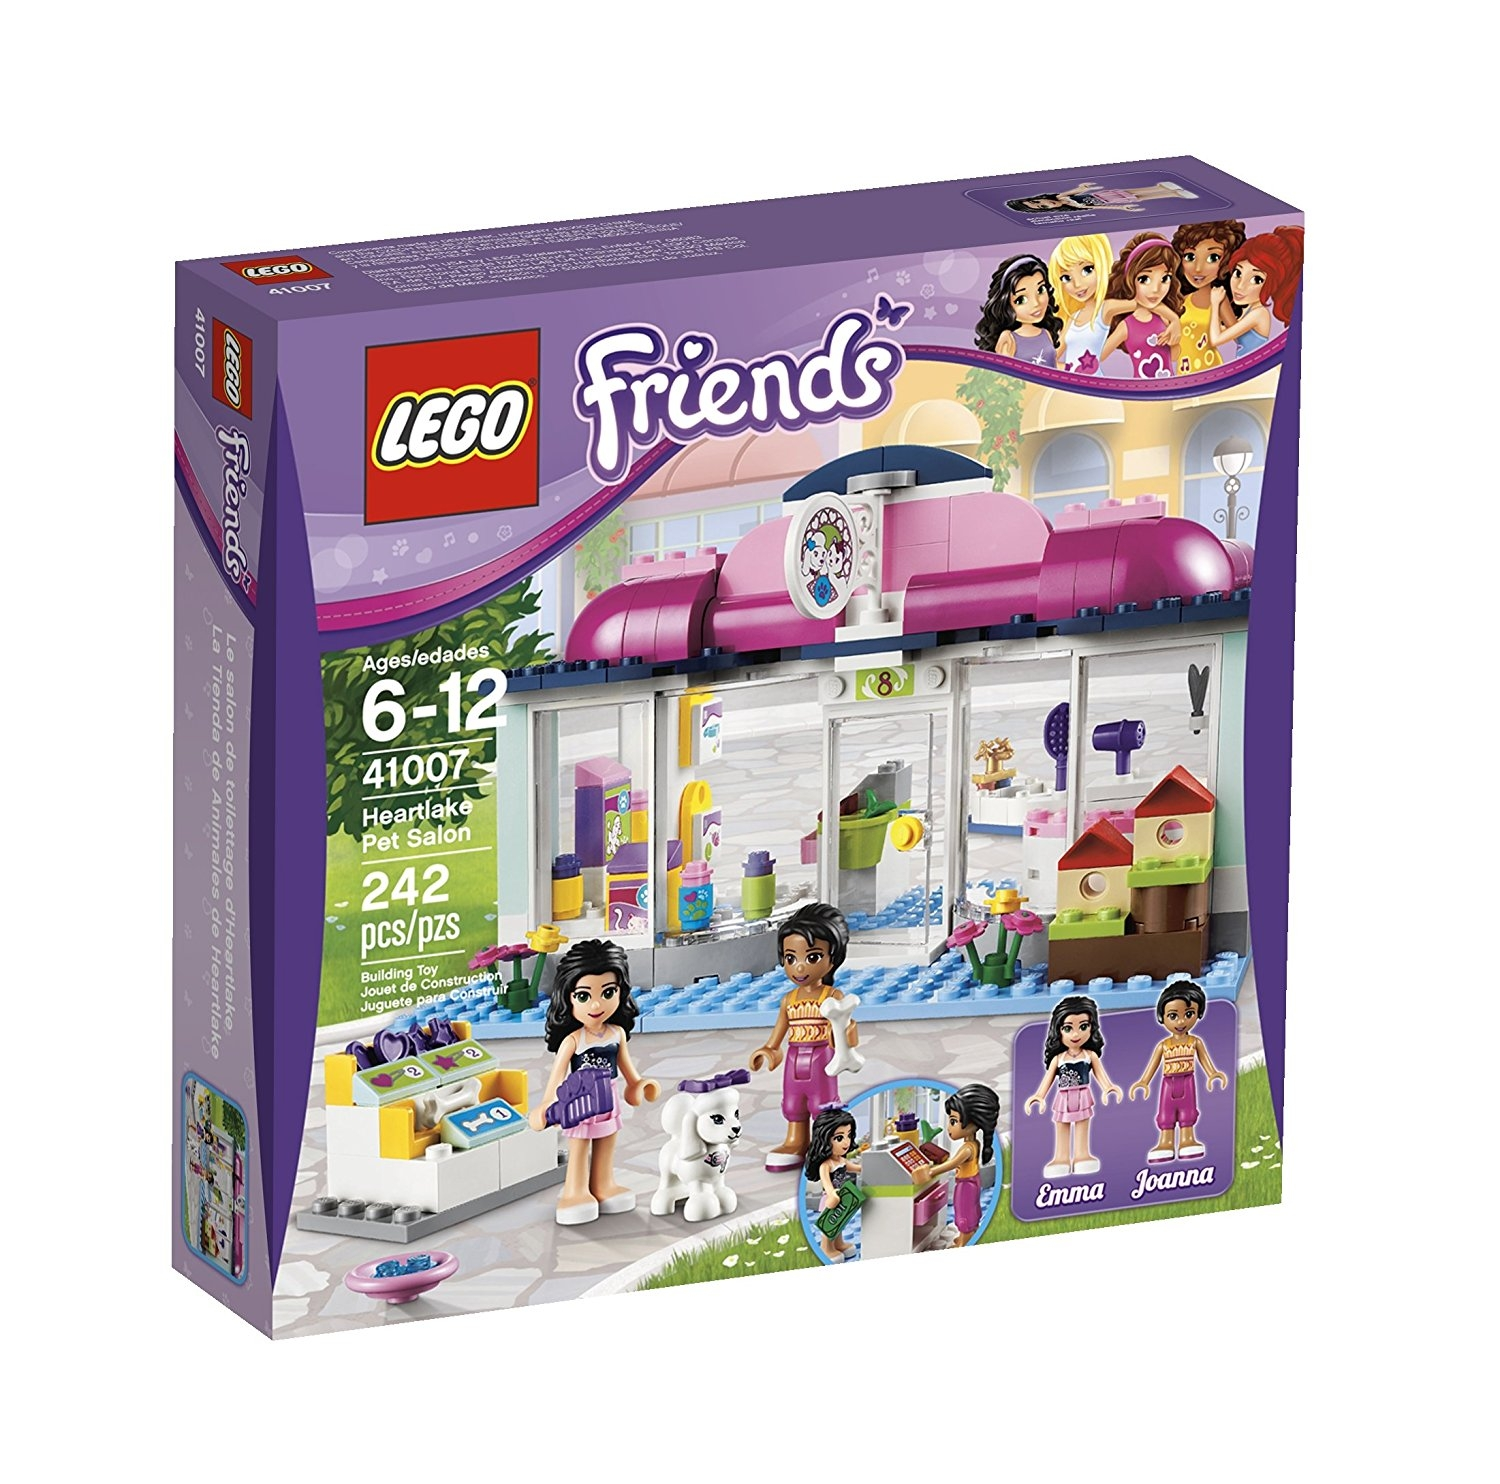 41008 Heartlake Zwembad Lego Friends Chipo